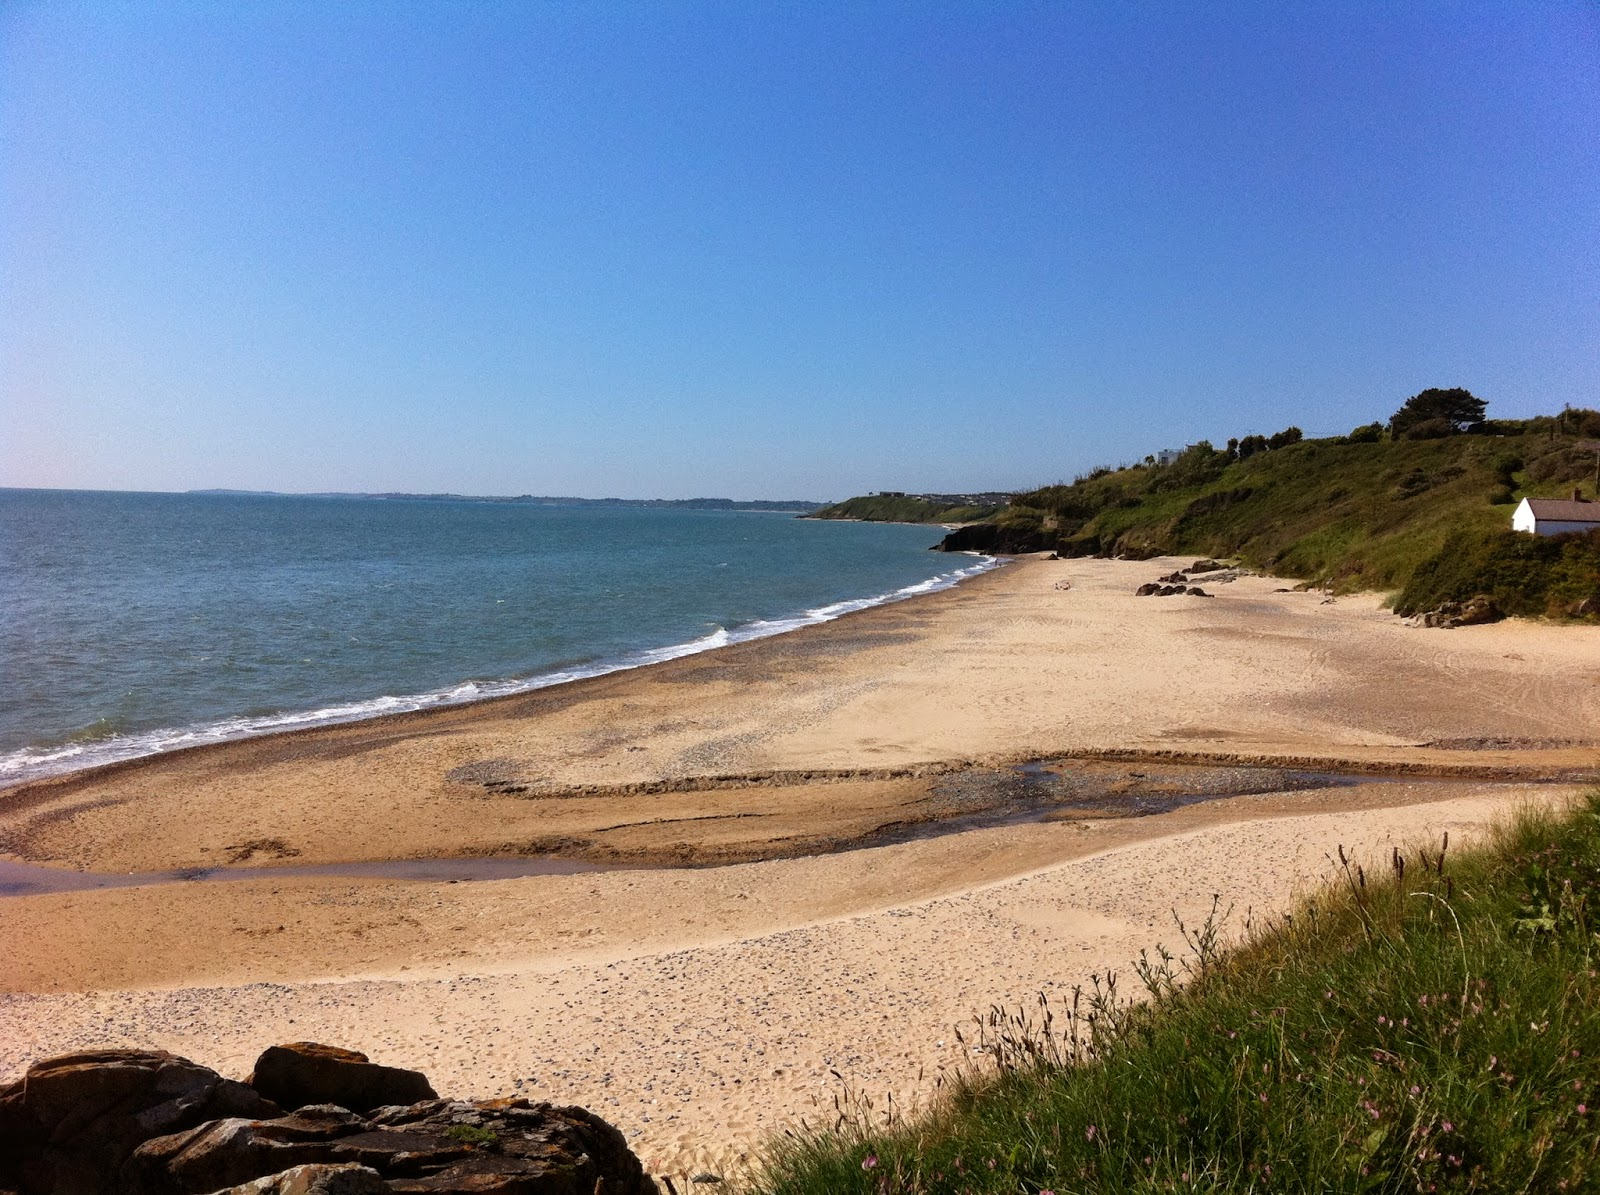 The best beaches in wexford south east ireland travel blog for The wexford